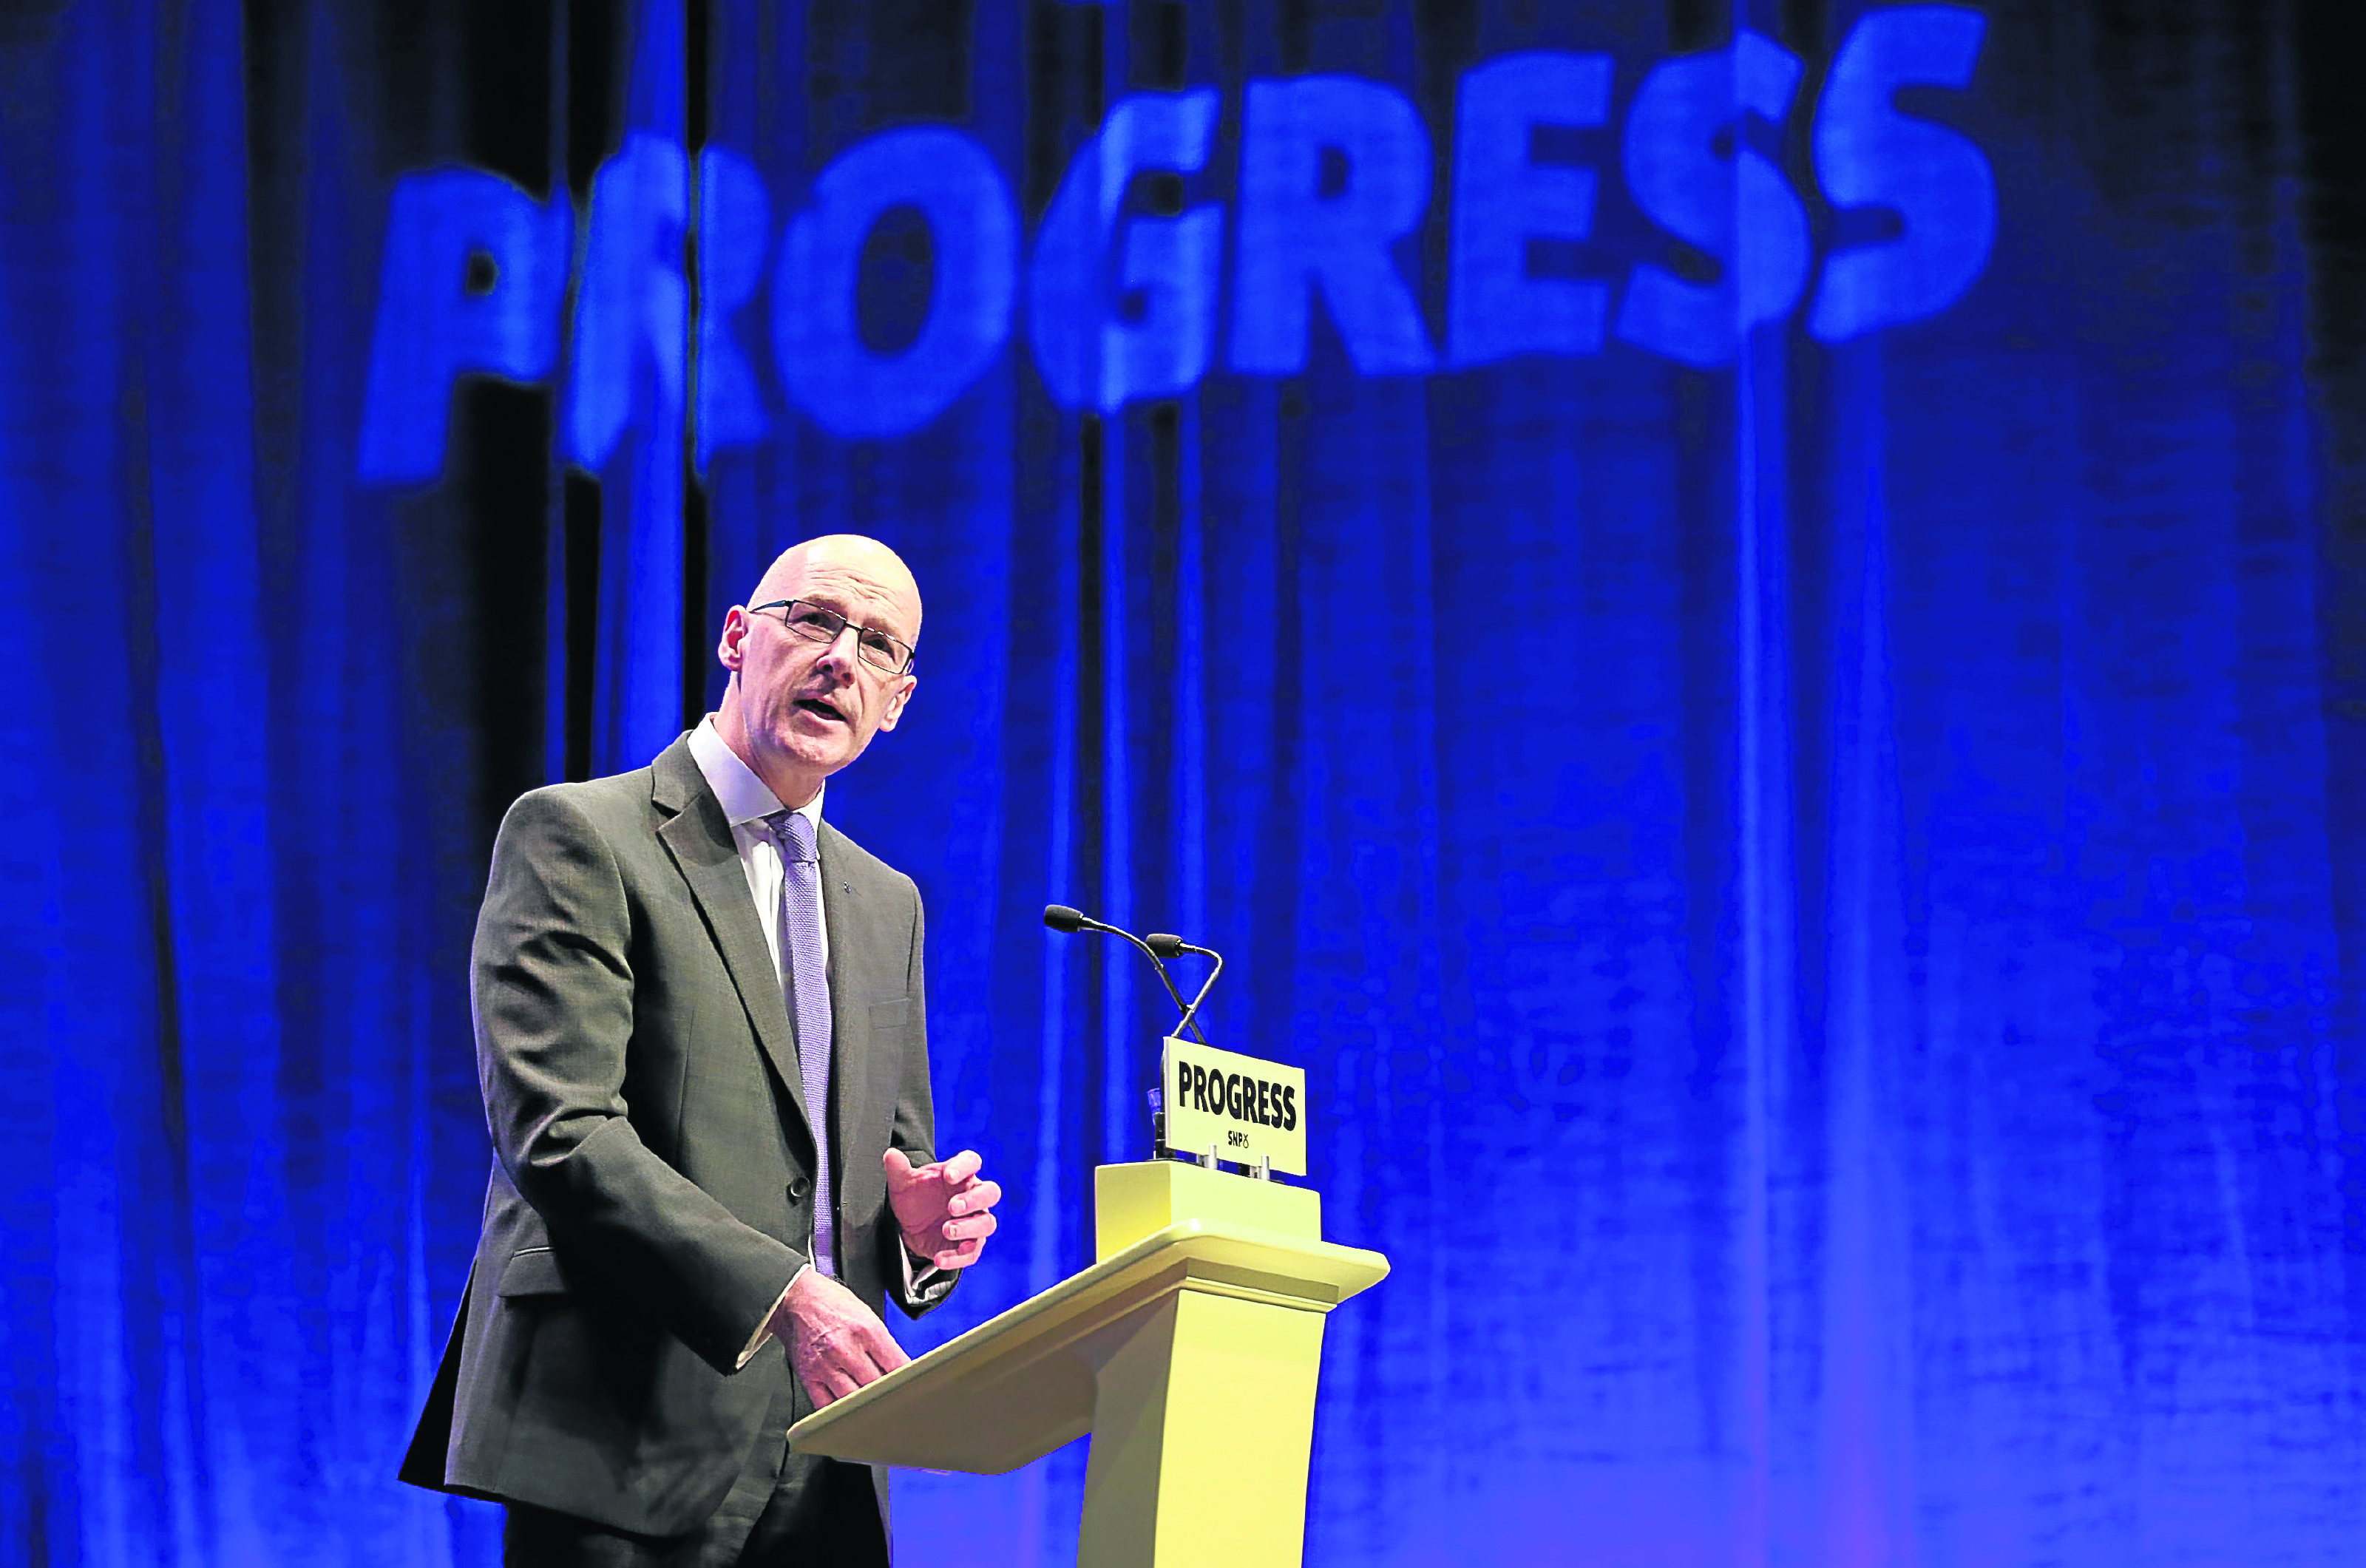 Deputy First Minister of Scotland John Swinney delivers the opening address to delegates at the  Scottish National Party (SNP) conference at the SEC Centre in Glasgow.